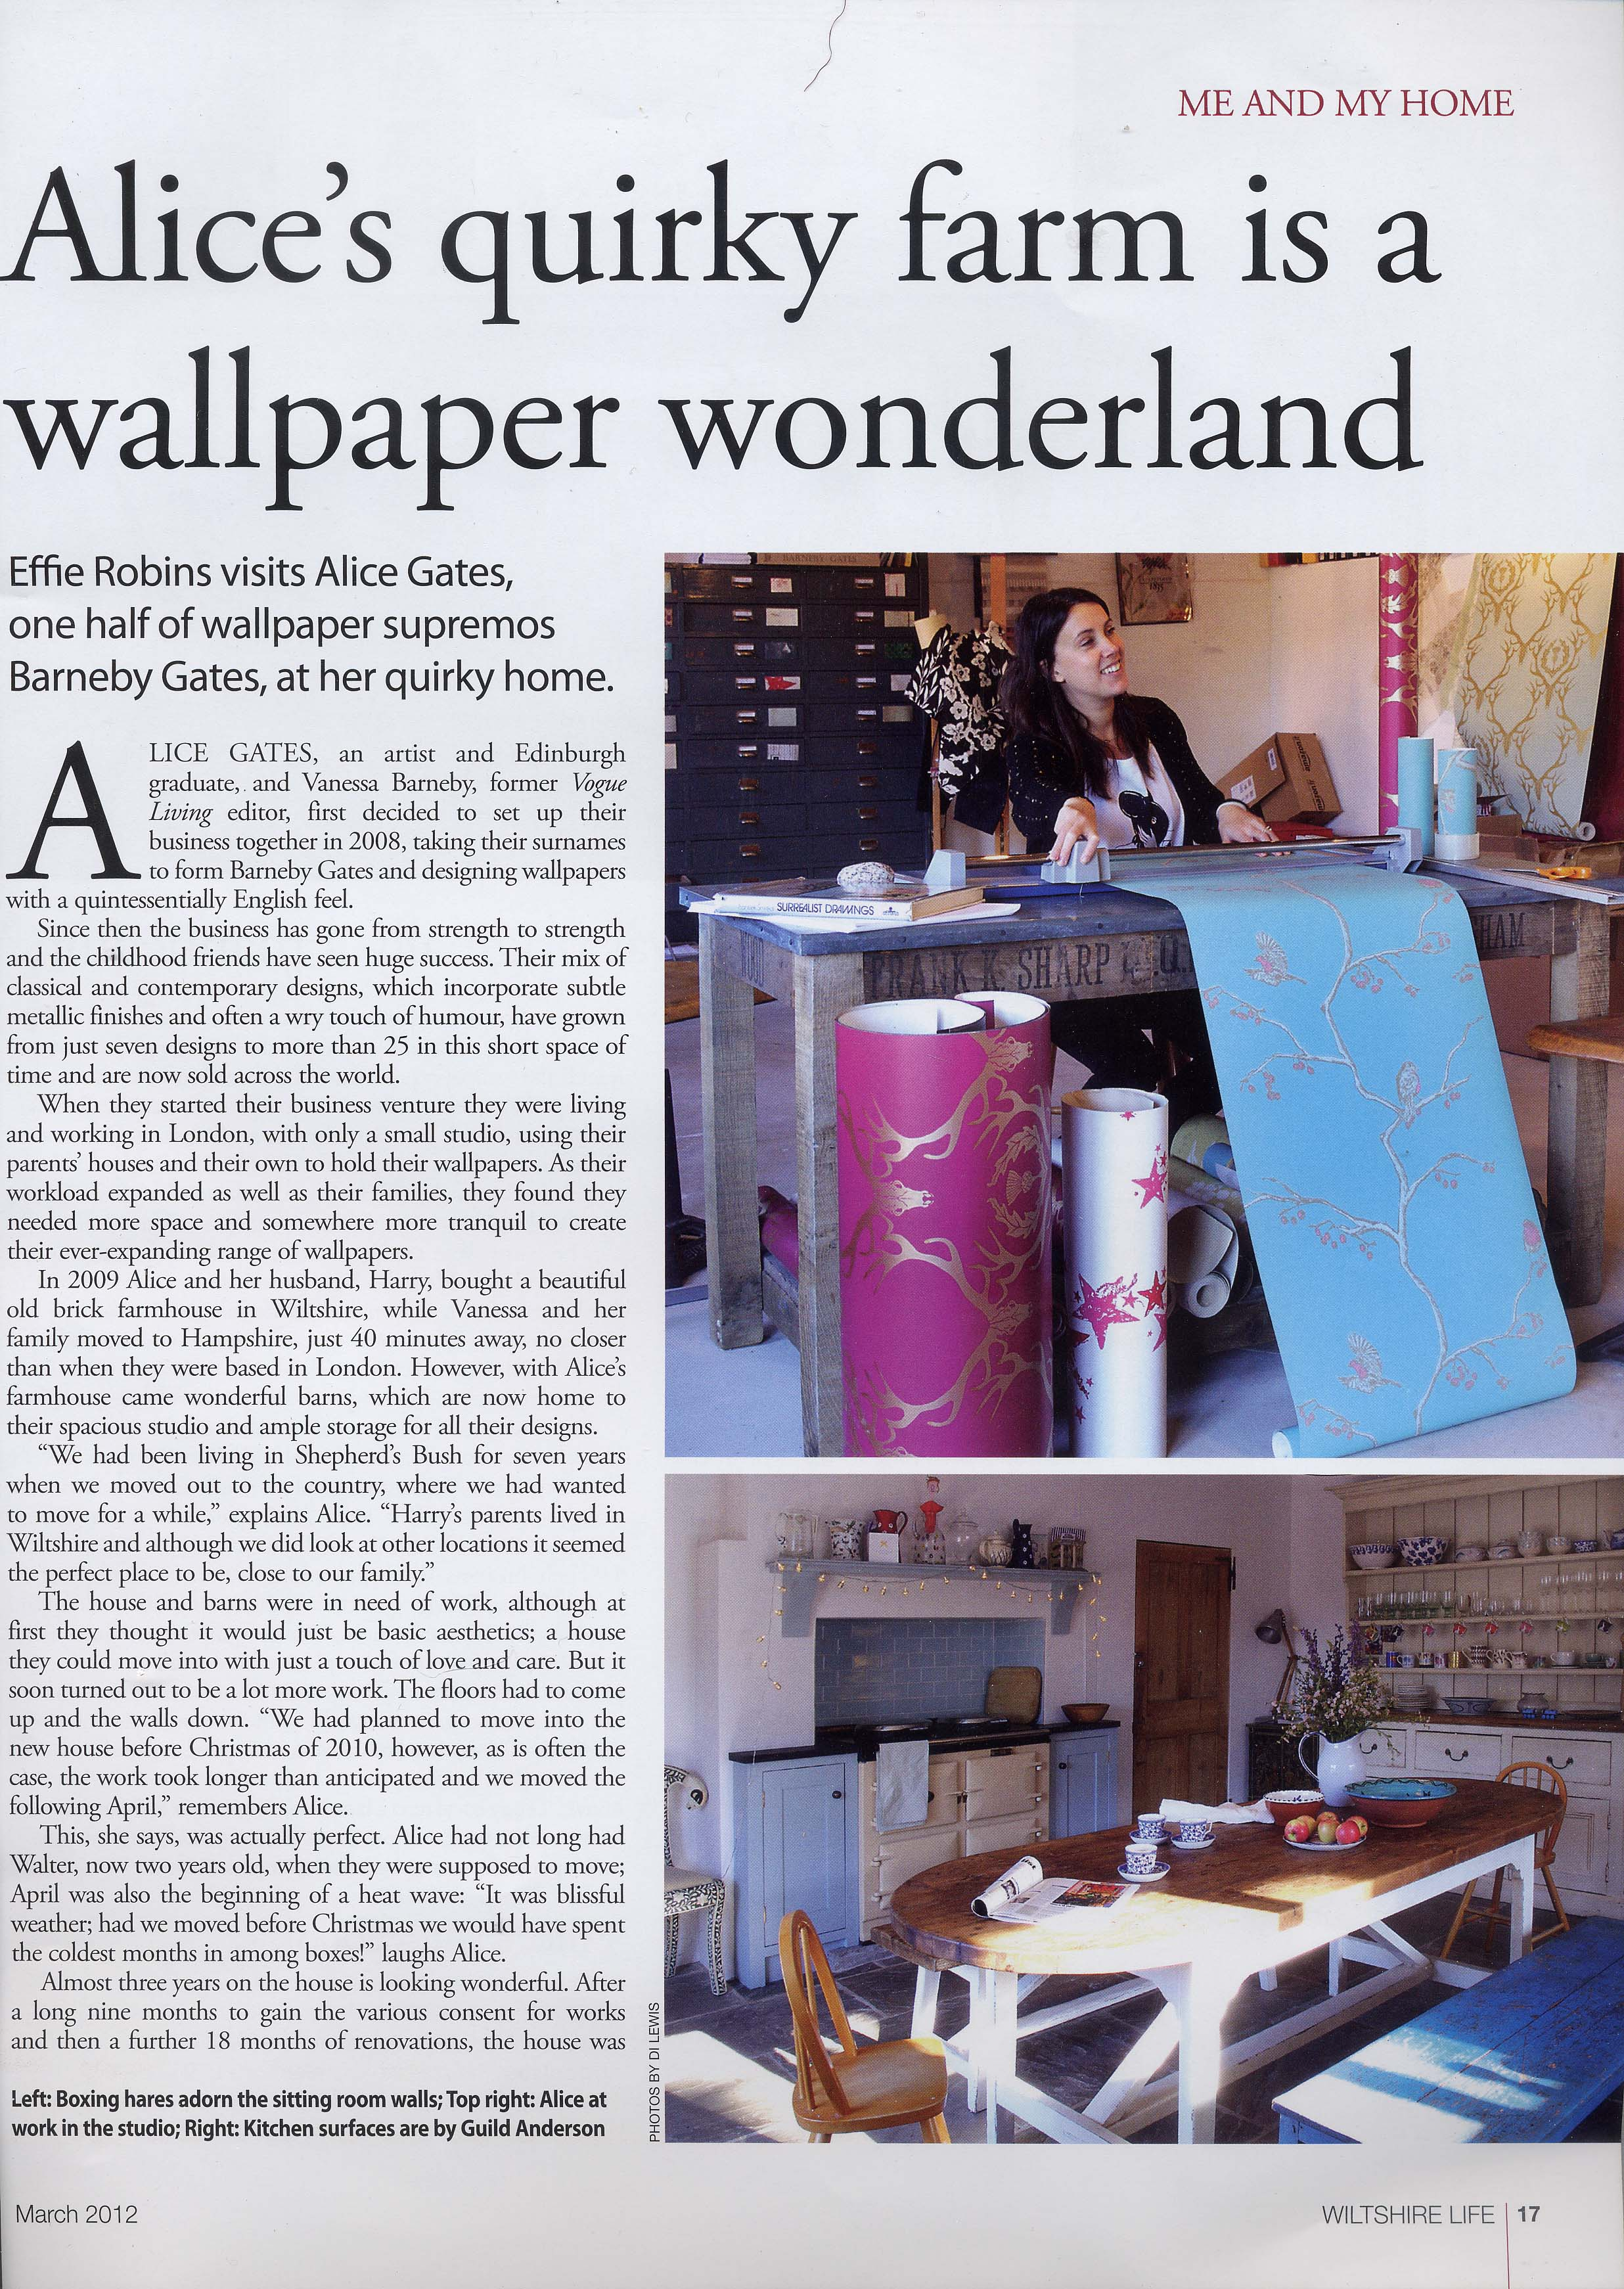 Wiltshire Life - March'12 - Article 2